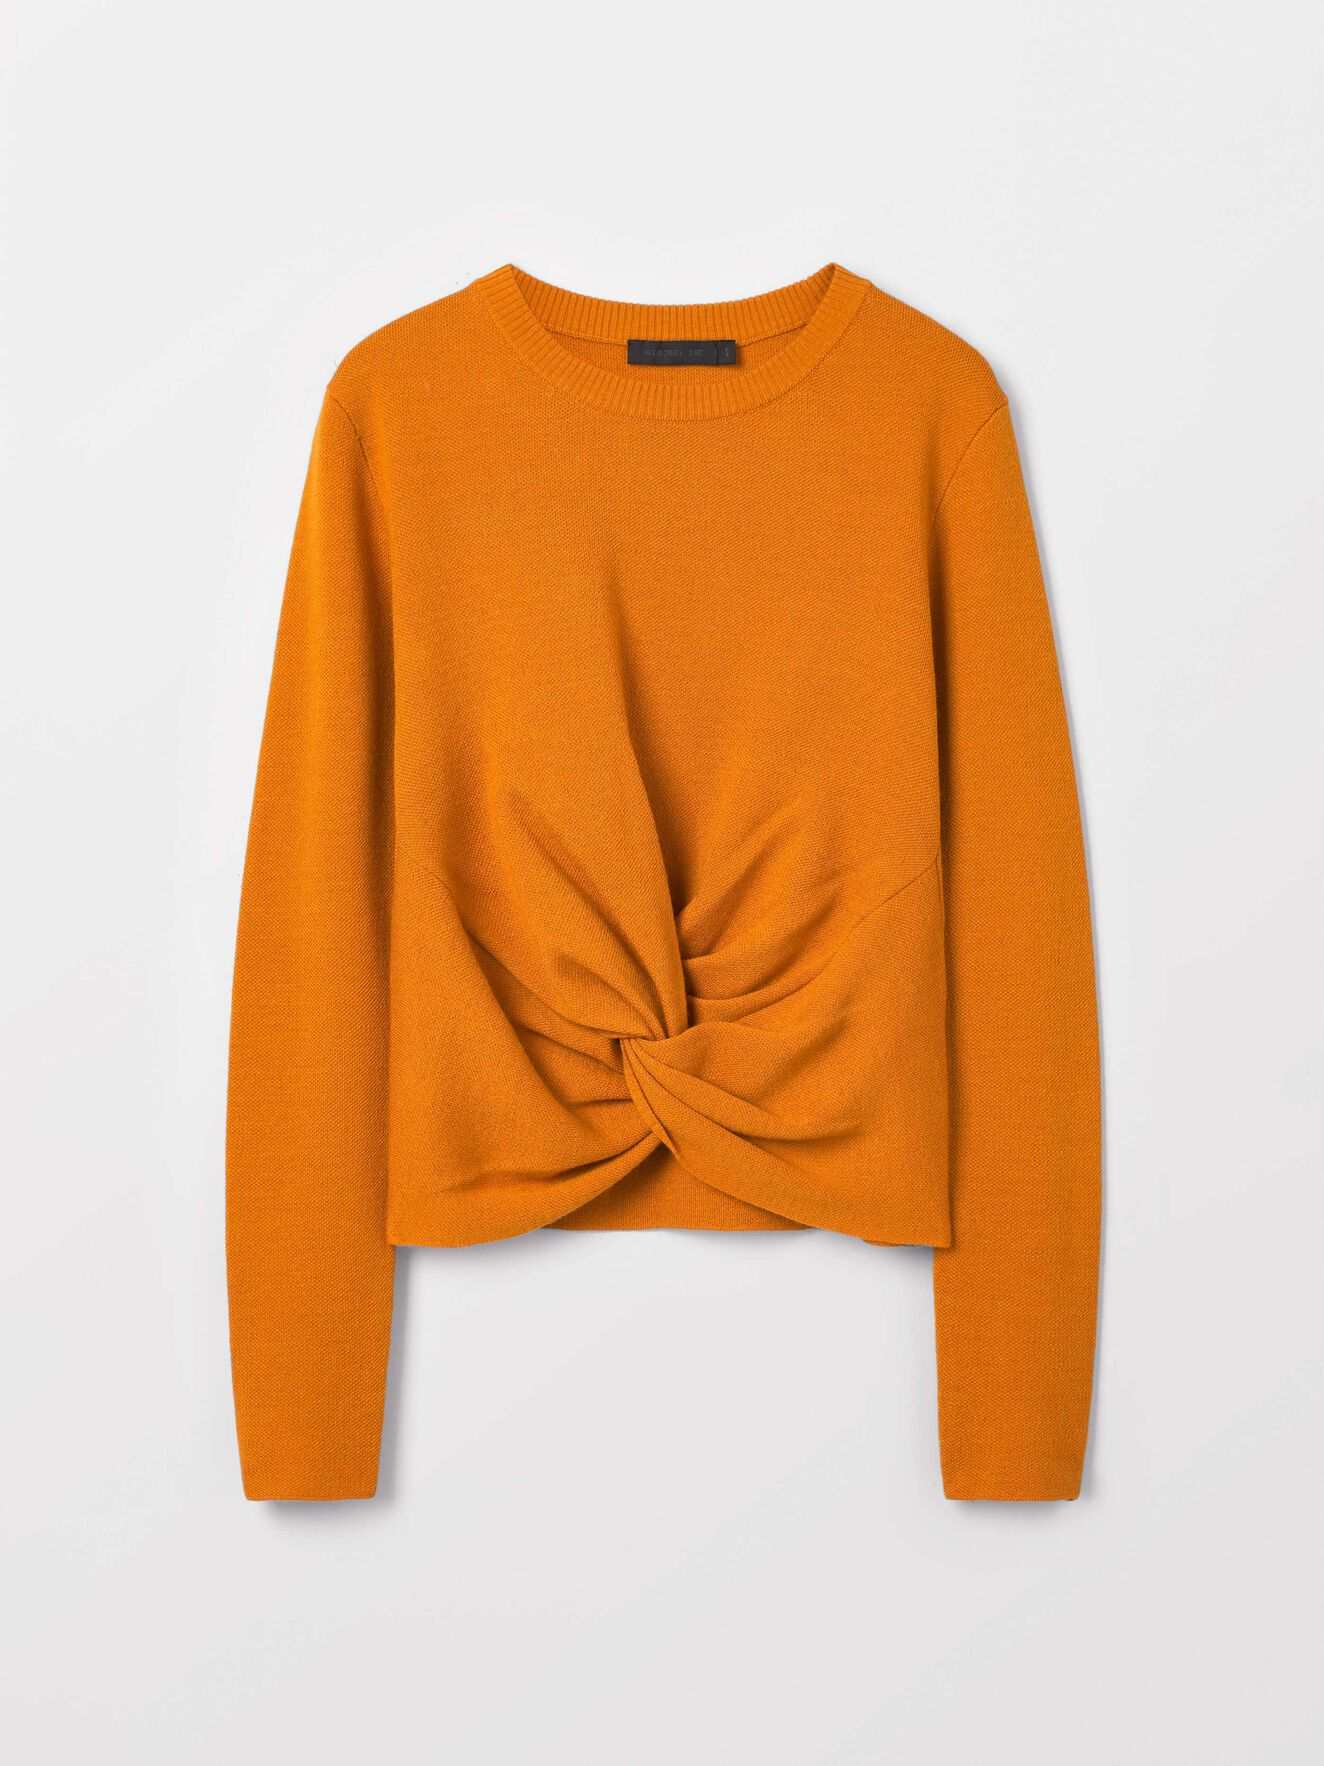 Tessie Pullover in Autumn Leaf from Tiger of Sweden